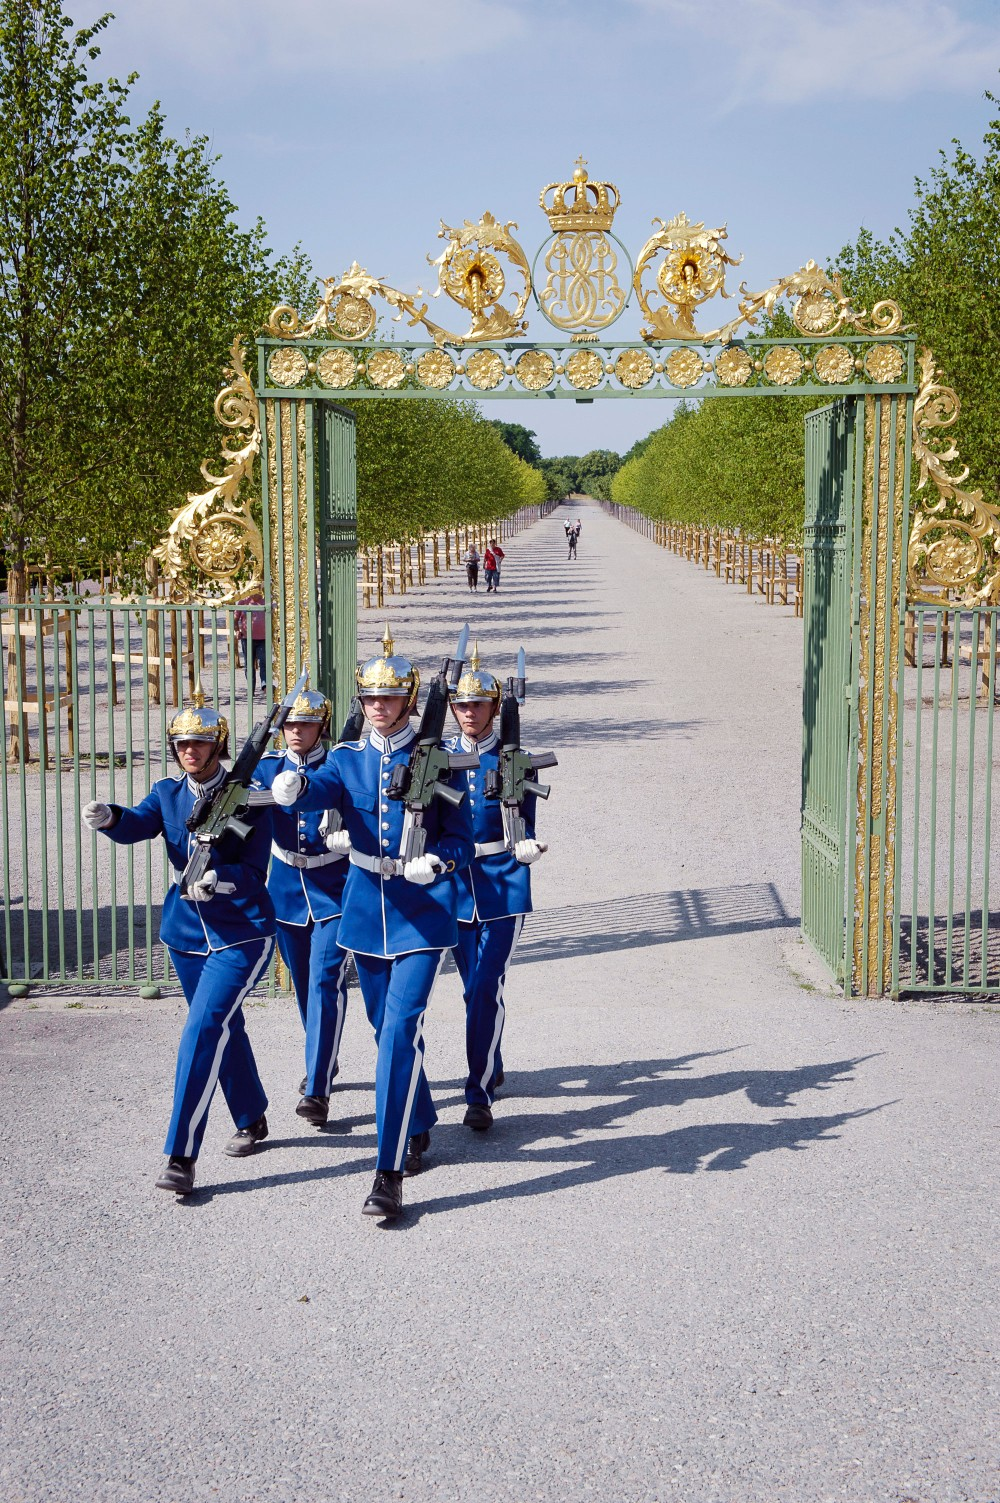 The park and gardens at Drottningholm have been developed in three stages, inspired by three main styles: the Baroque garden; the gardens around the Chinese Pavilion in the Rococo style; and the English Romantic landscape park. The Palace park, guarded by the Royal Guard, is open to the public all year round. – © Gomer Swahn